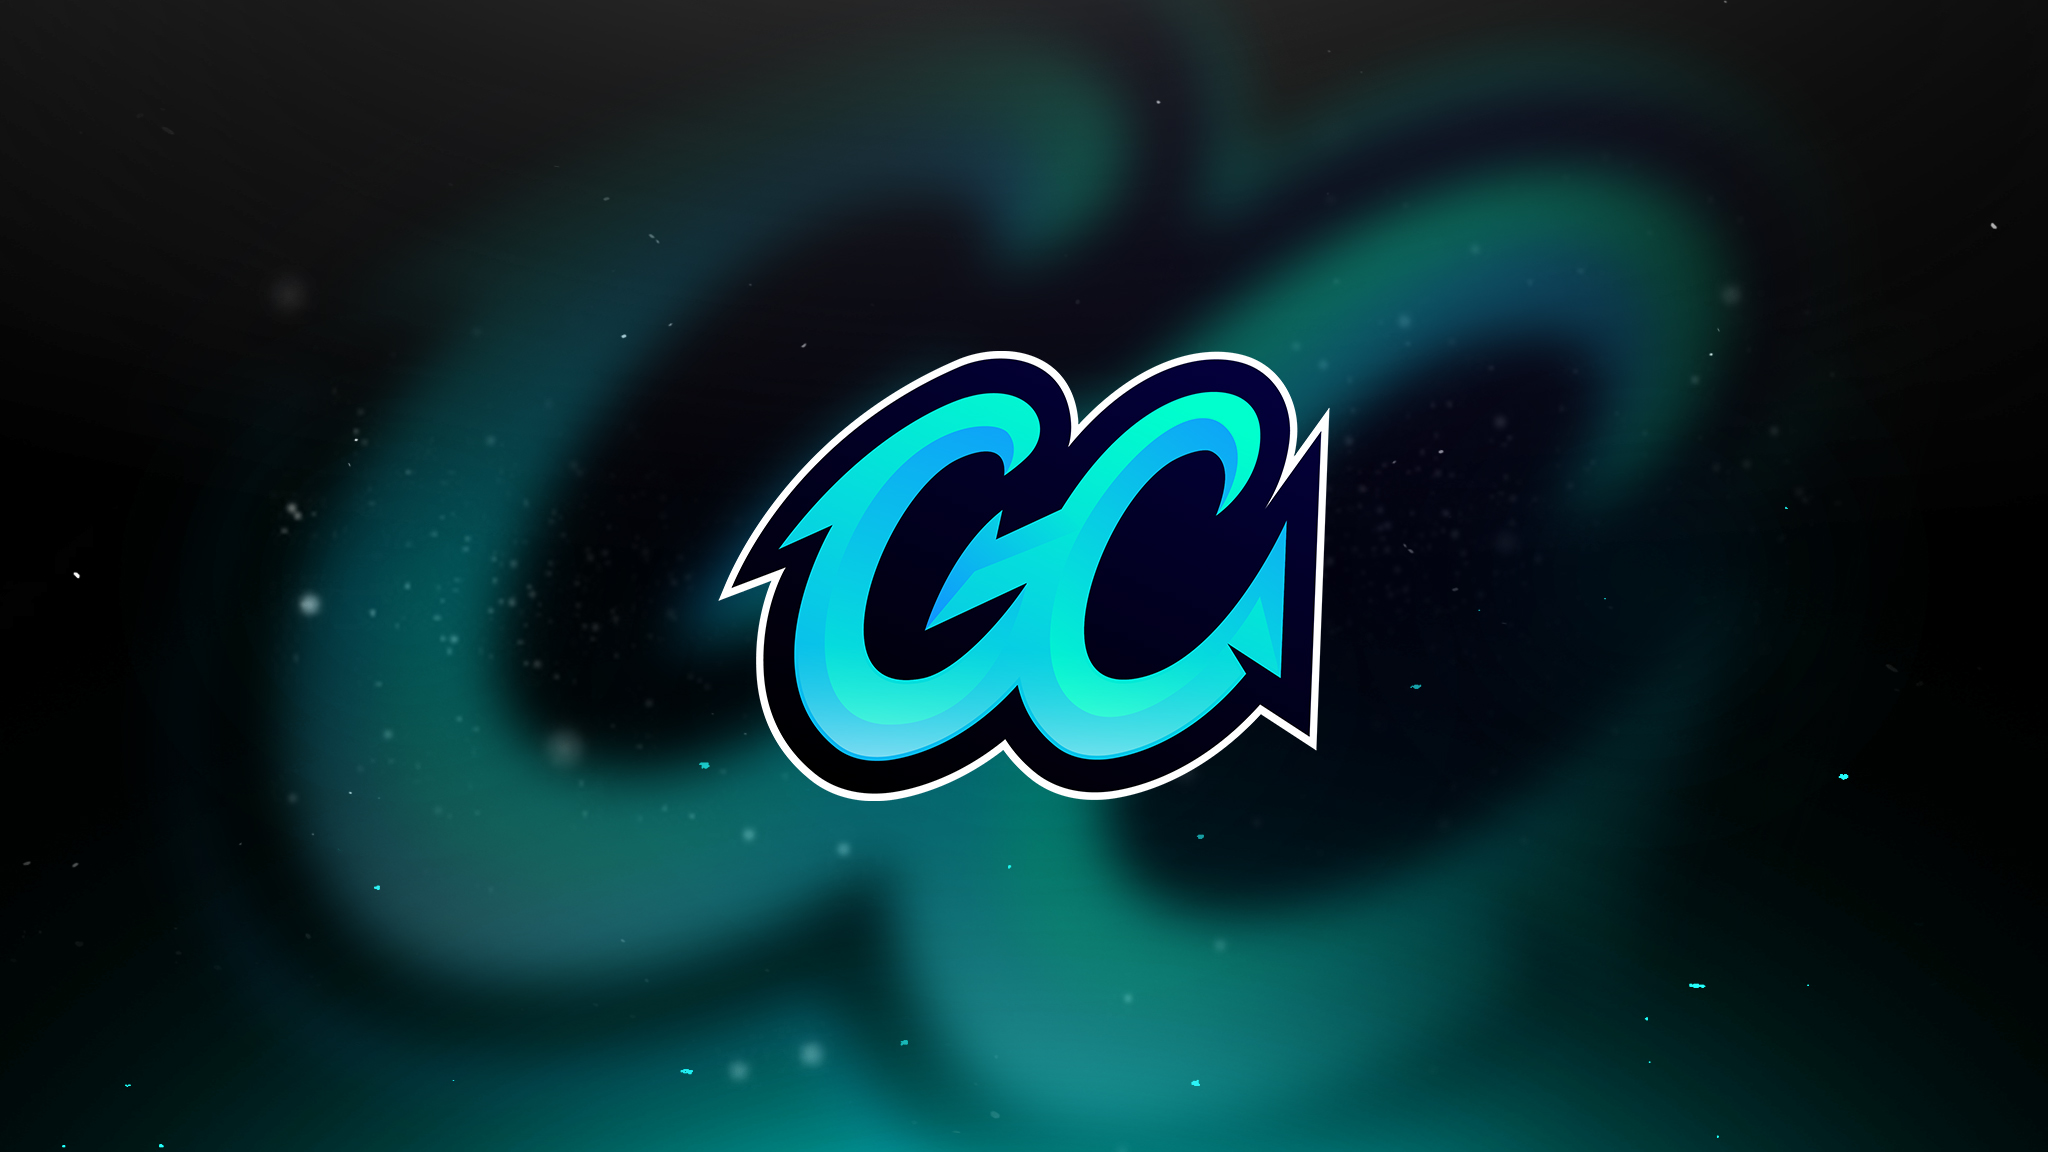 Gcg gaming community